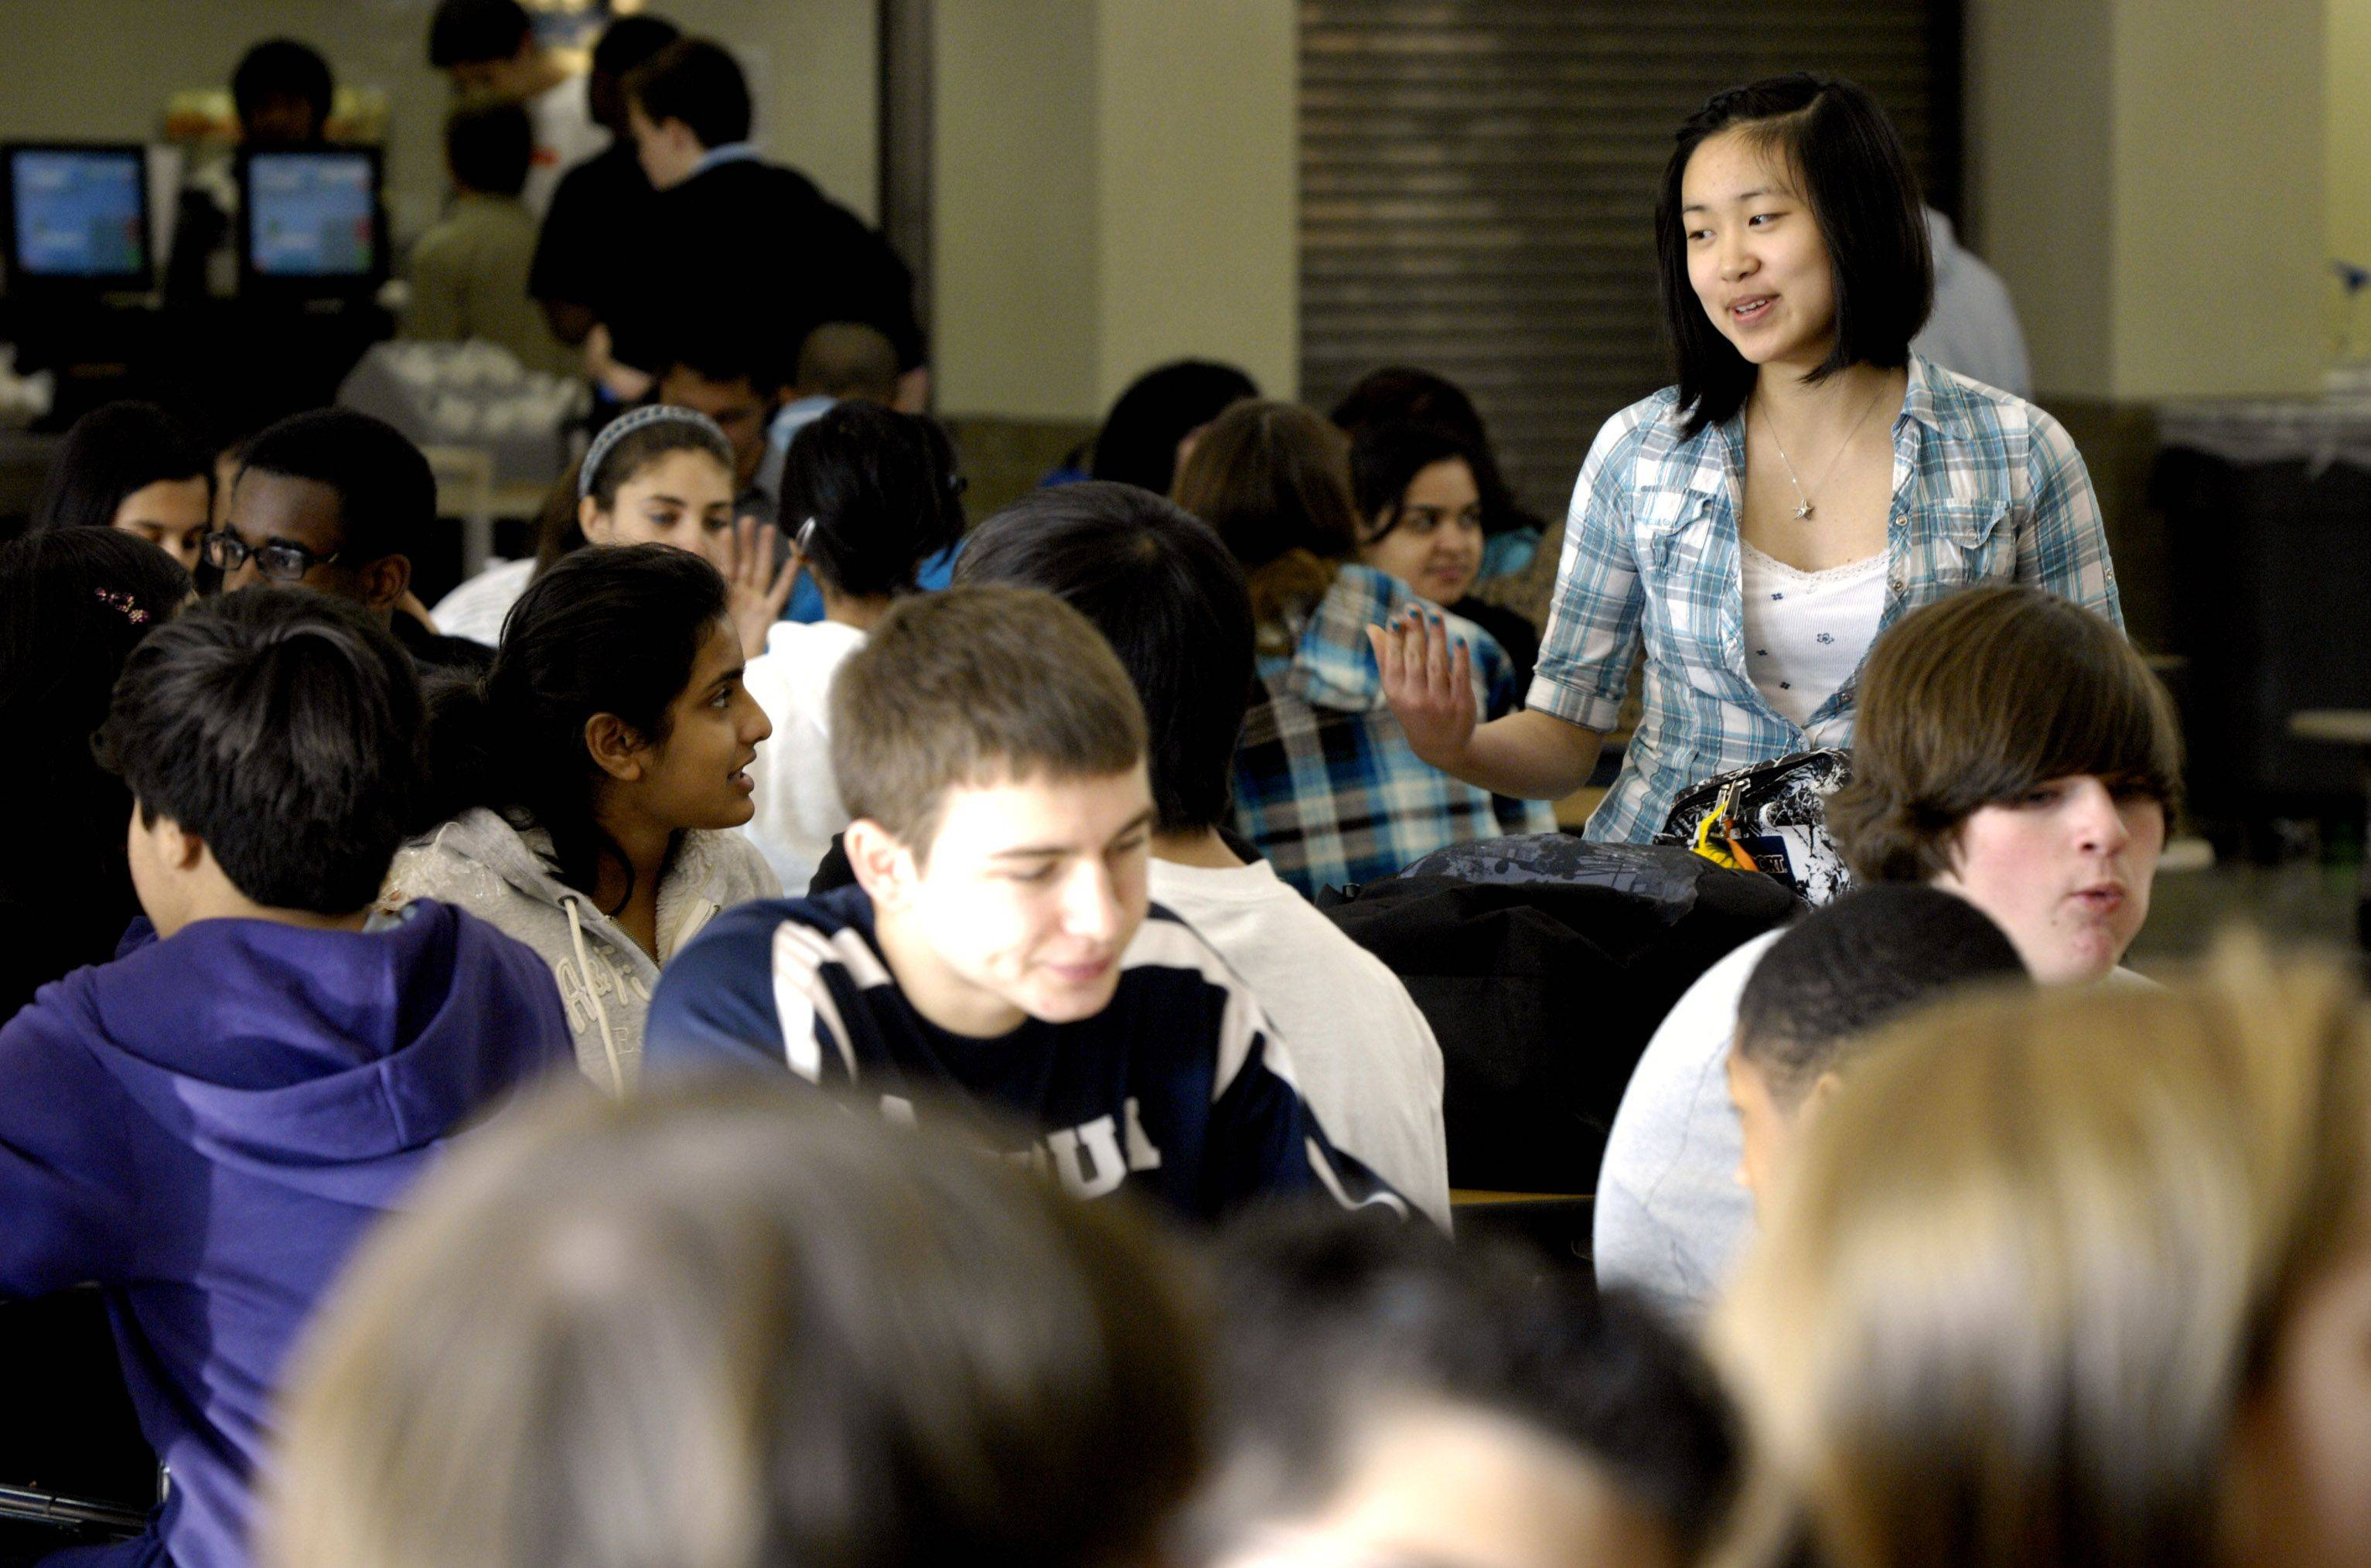 Neuqua Valley High School student Lucy Chen, 16, eats lunch with her friends during an option period.